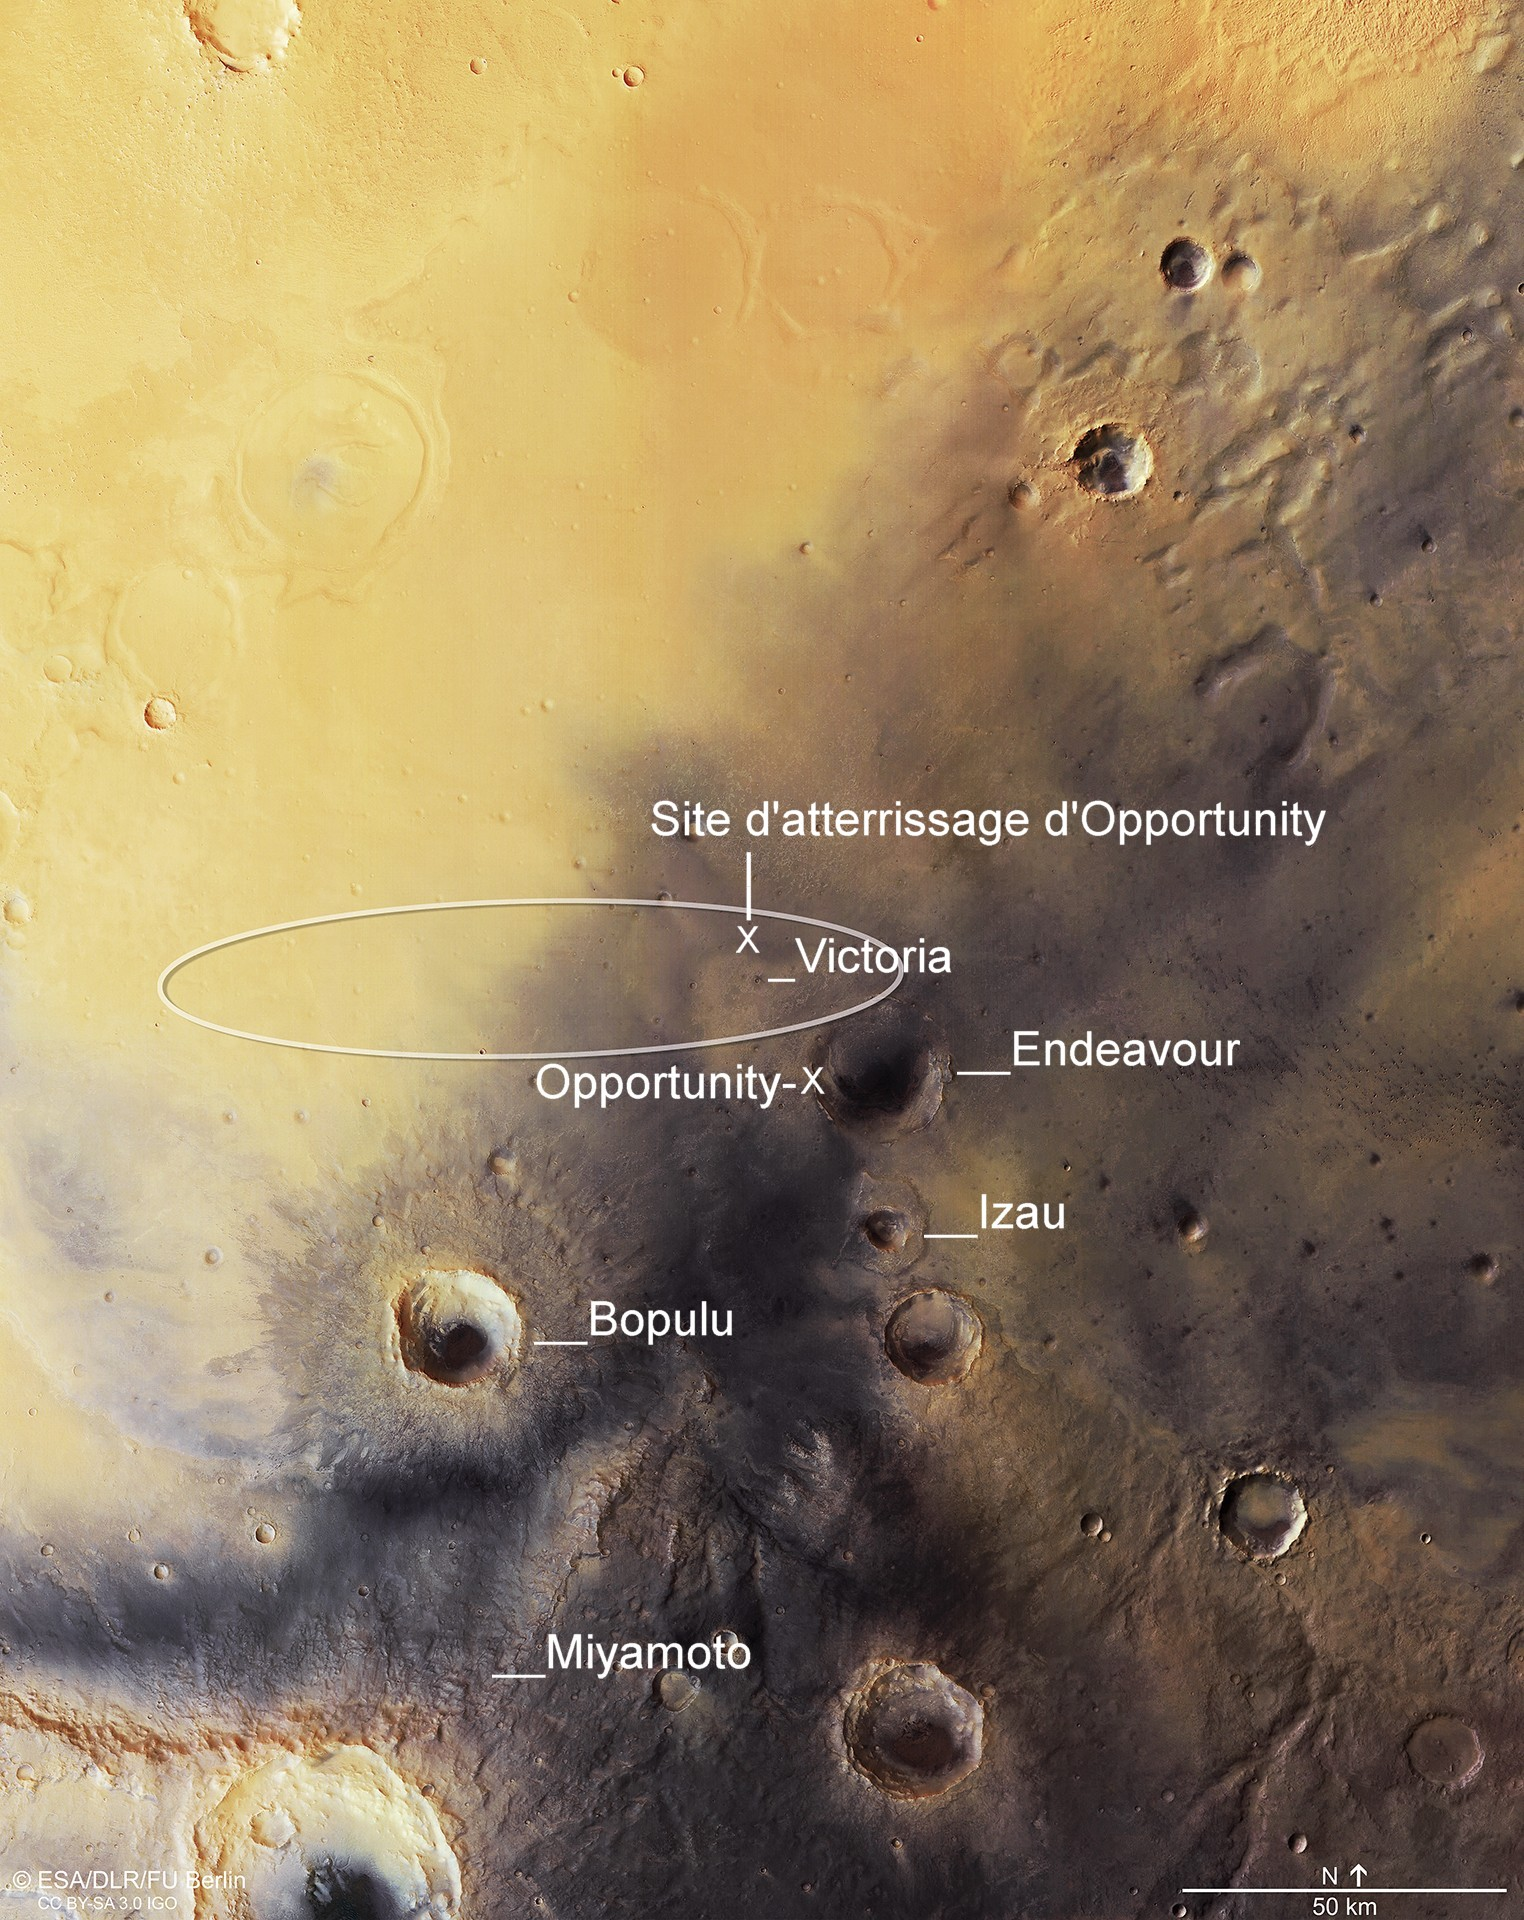 mars_express_image_of_schiaparelli_s_landing_site_with_ellipse rens